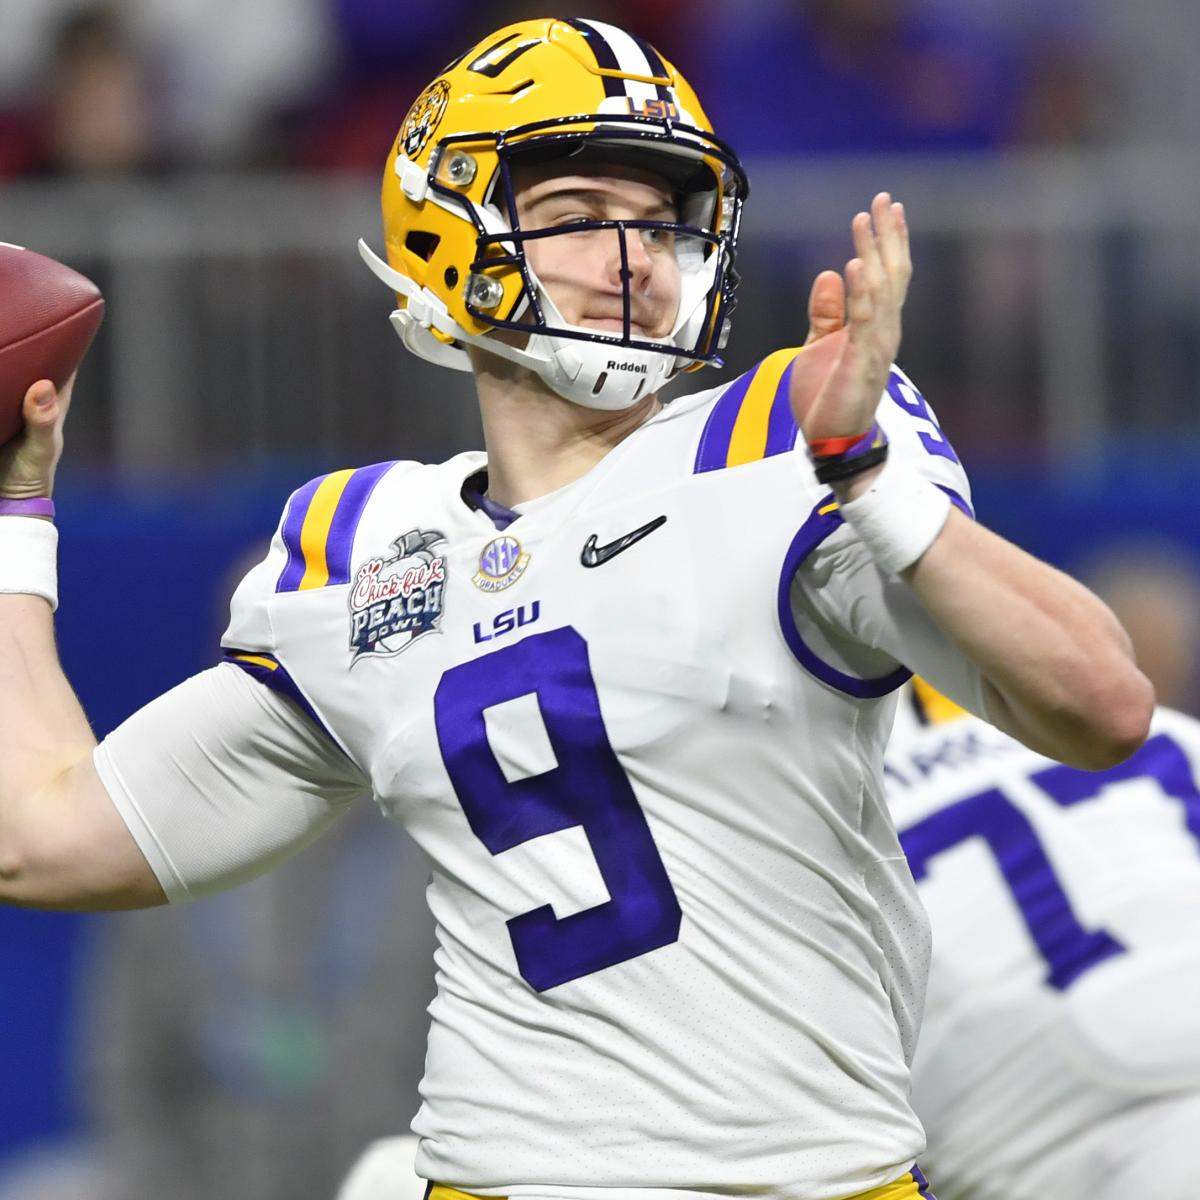 2020 NFL Draft Rumors: Execs 'Concerned' with Quality of QBs After Joe Burrow